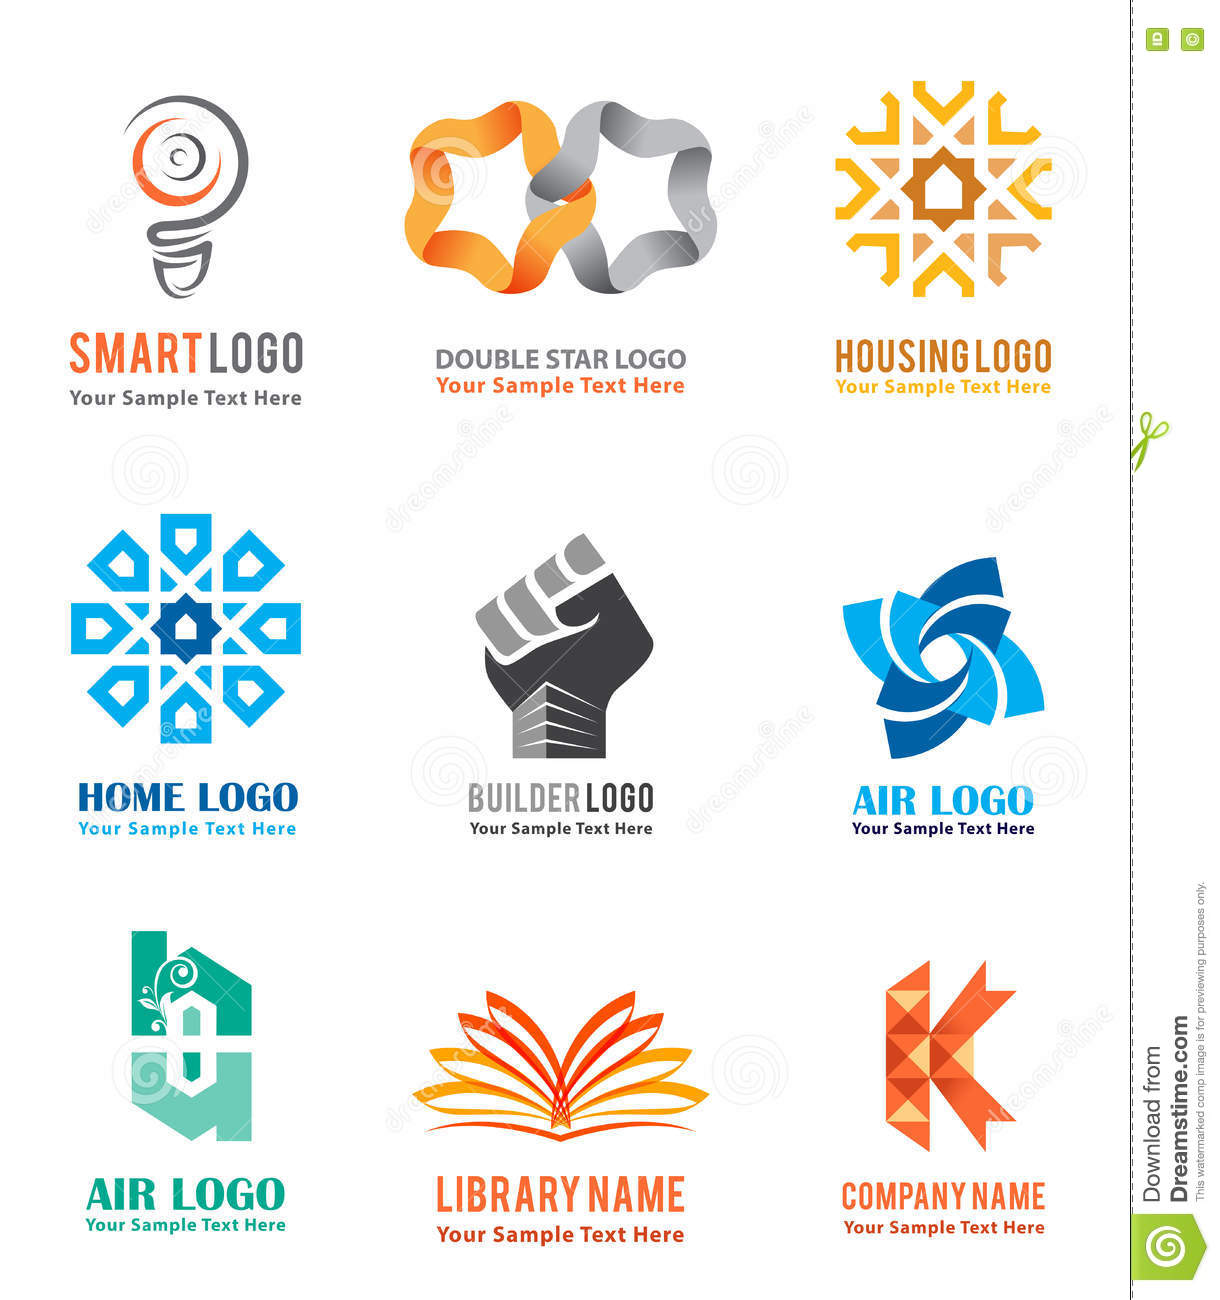 logo icons set for company identity branding like smart